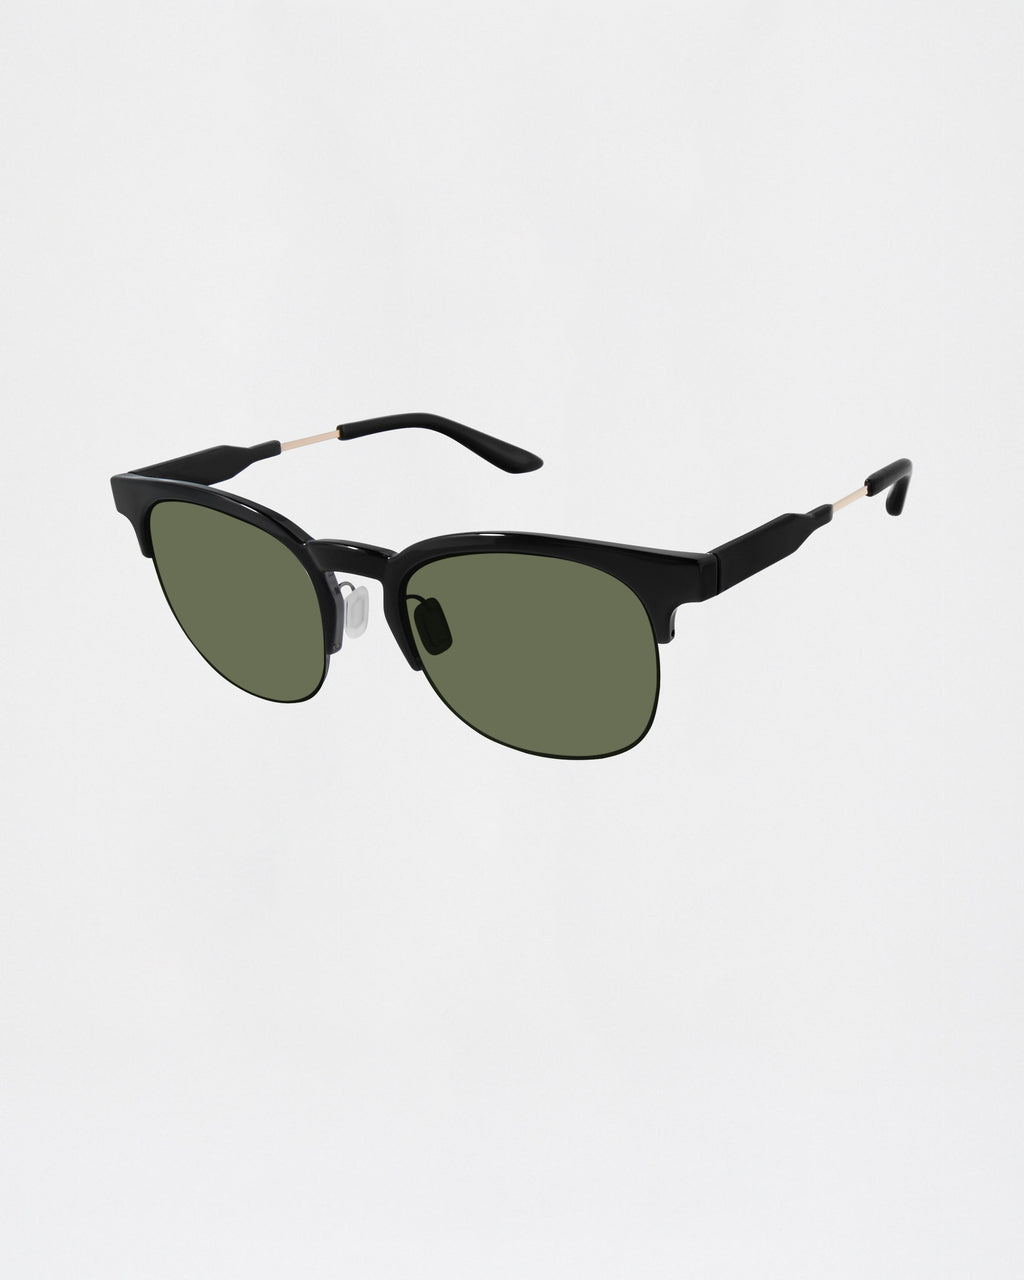 NMNYCP1 - Capistrano Sunglasses - accessories - sunglasses - BLACK CLUBMASTER FRAME 100% UVA/UVB